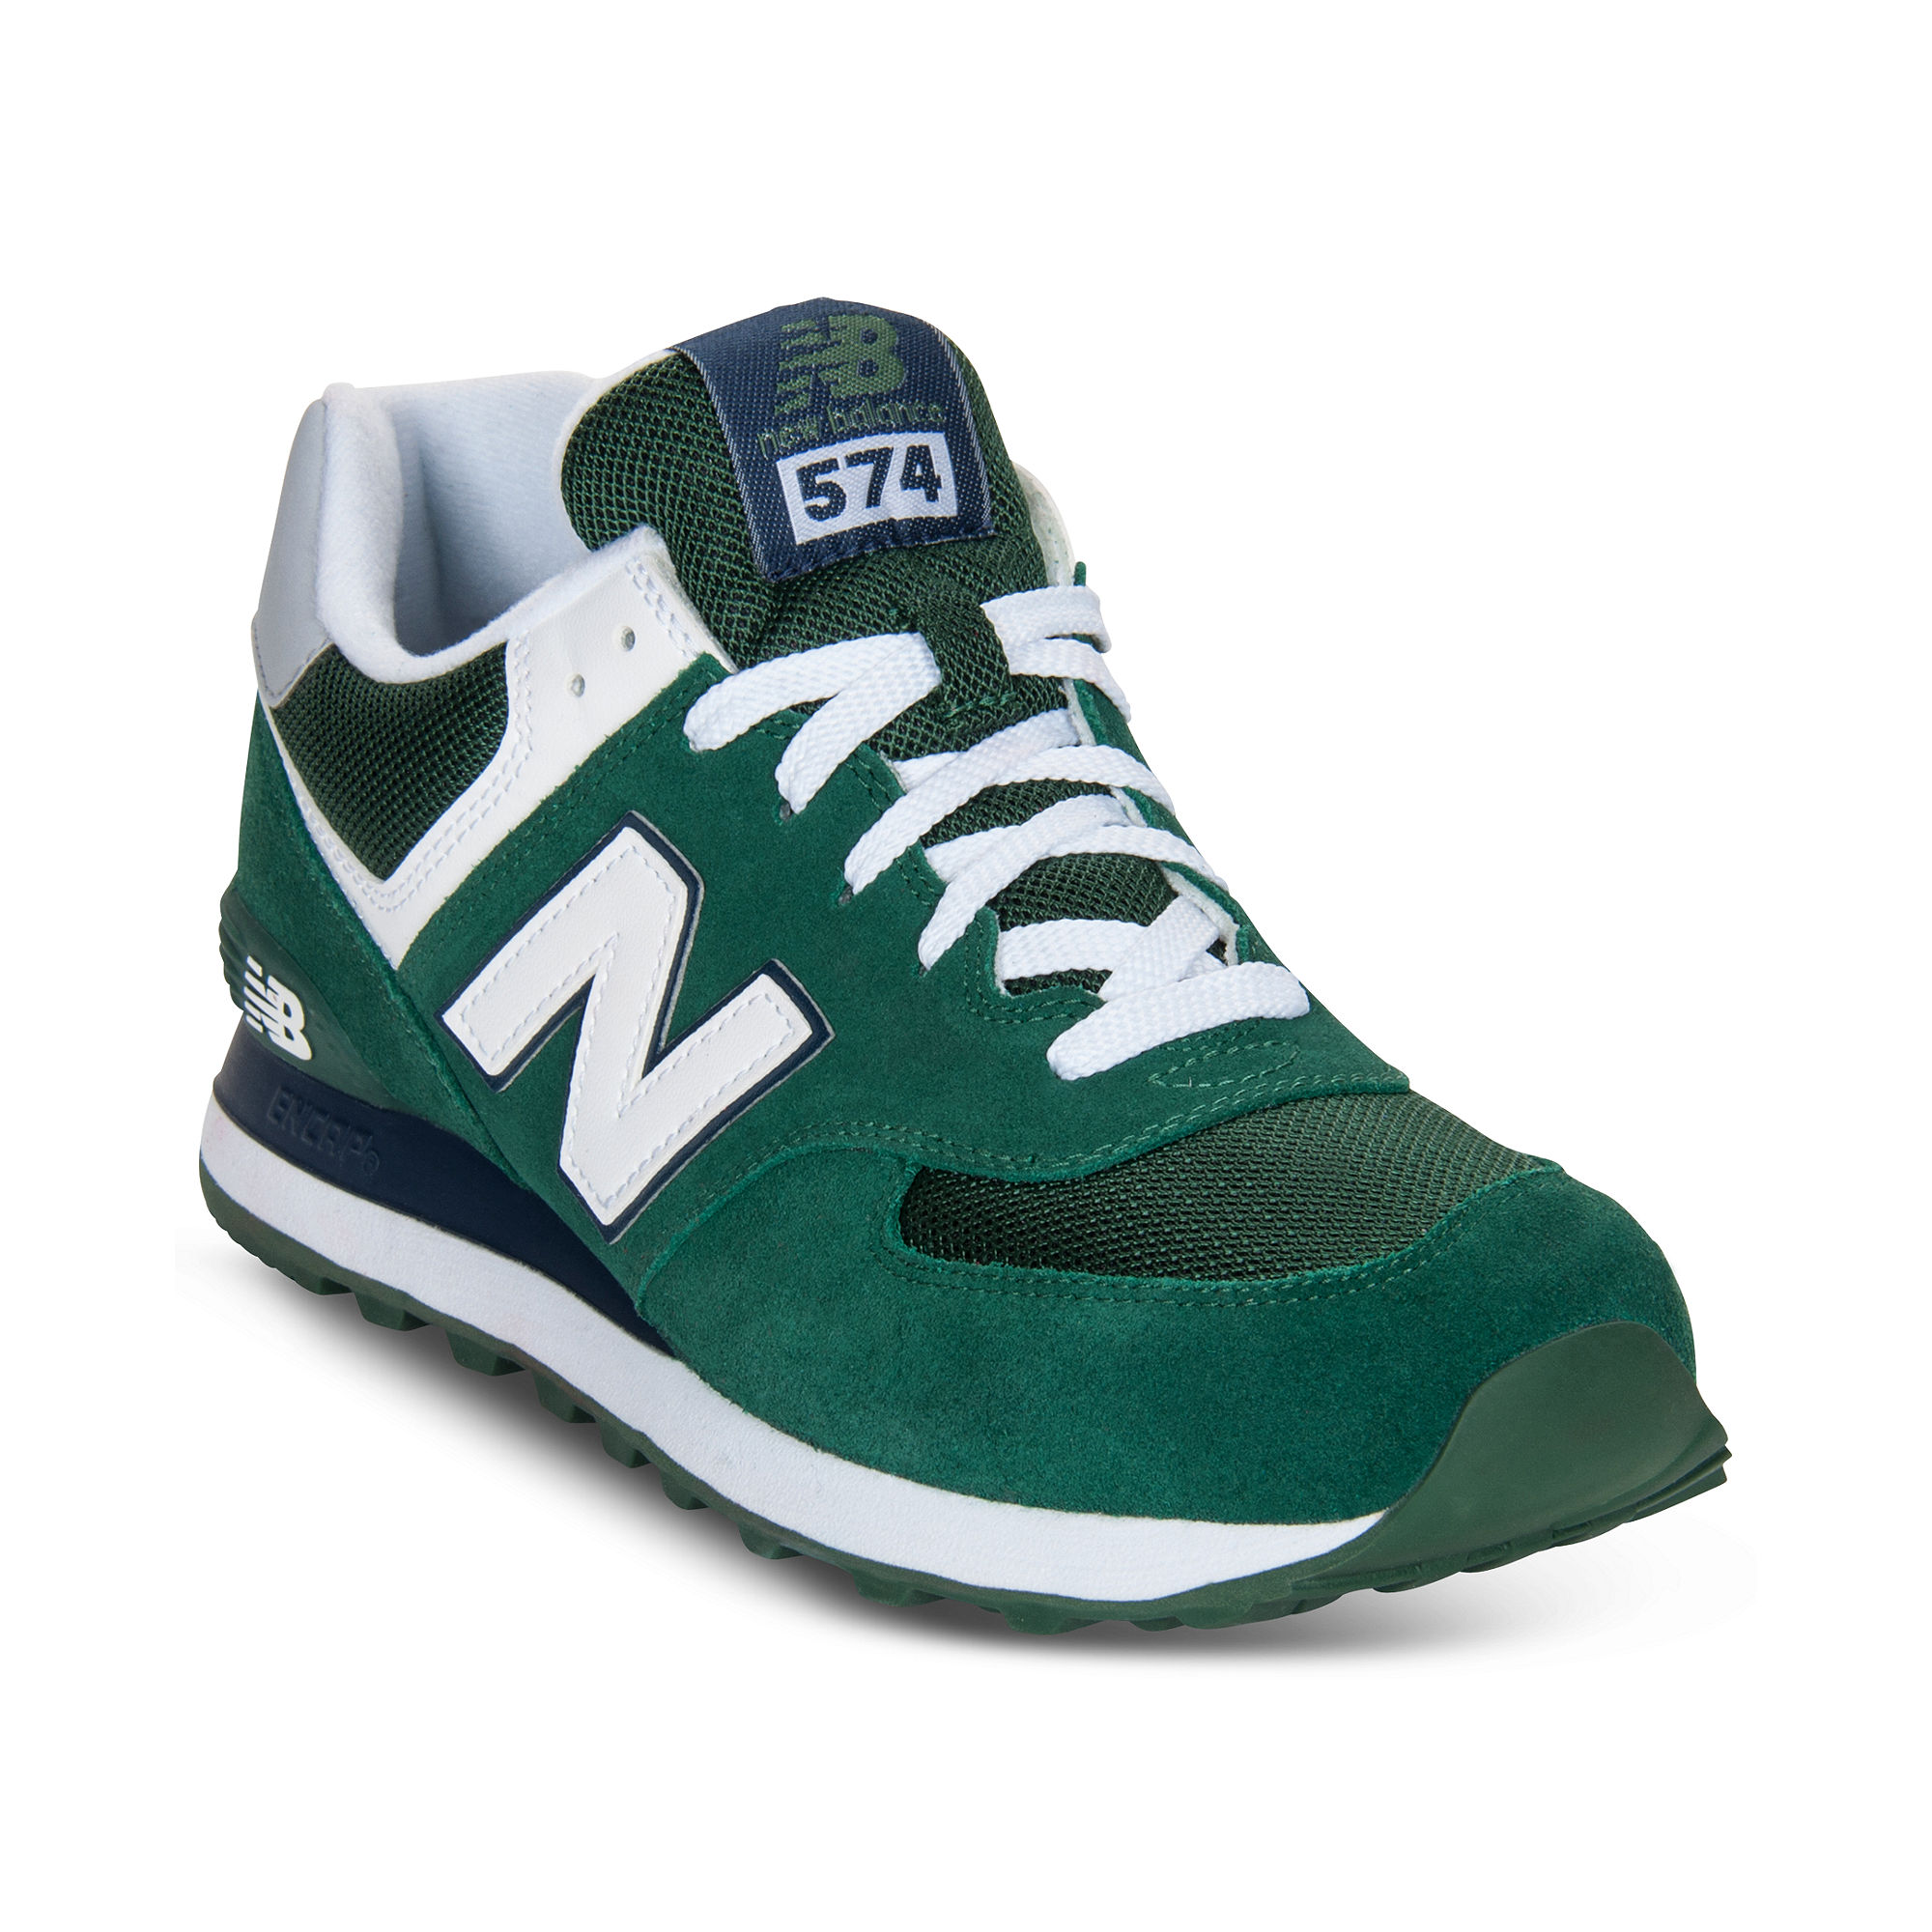 When Were New Balance Shoes Popular